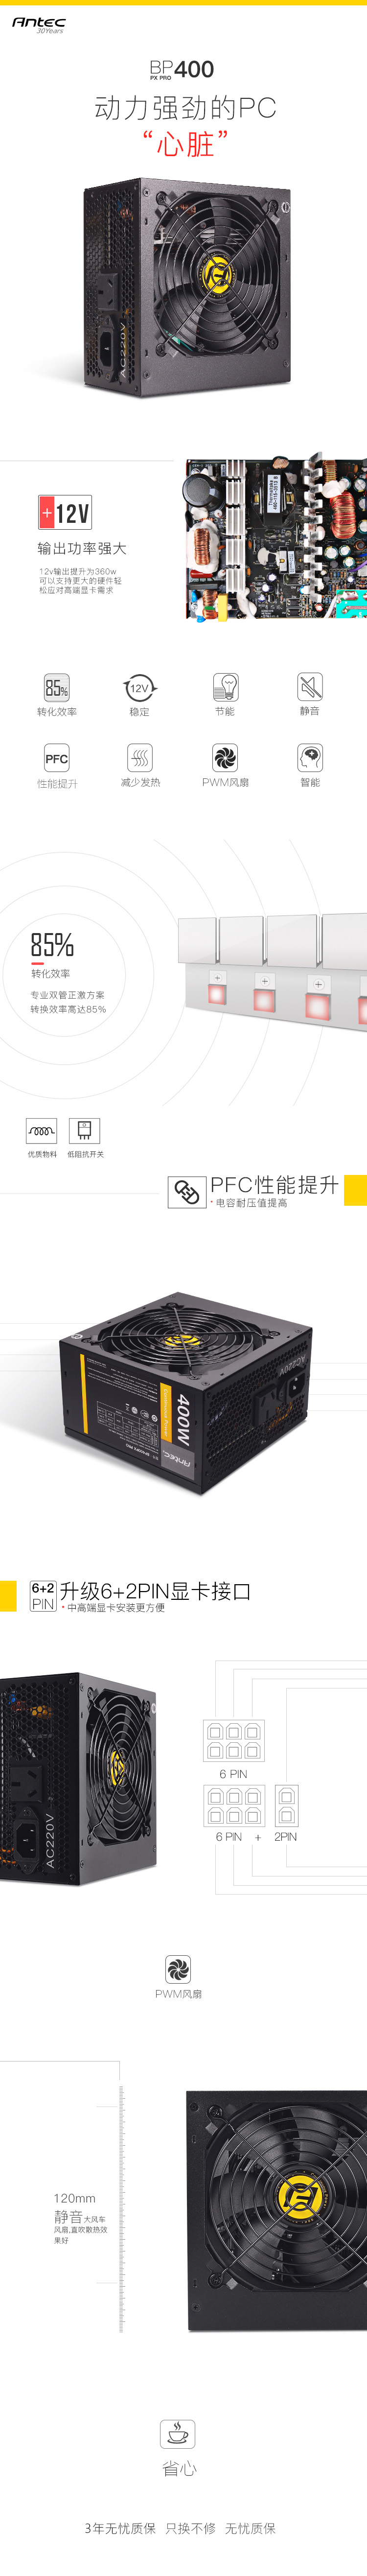 48 85] Antec/Antec BP400PX PRO power supply rated 400 watts